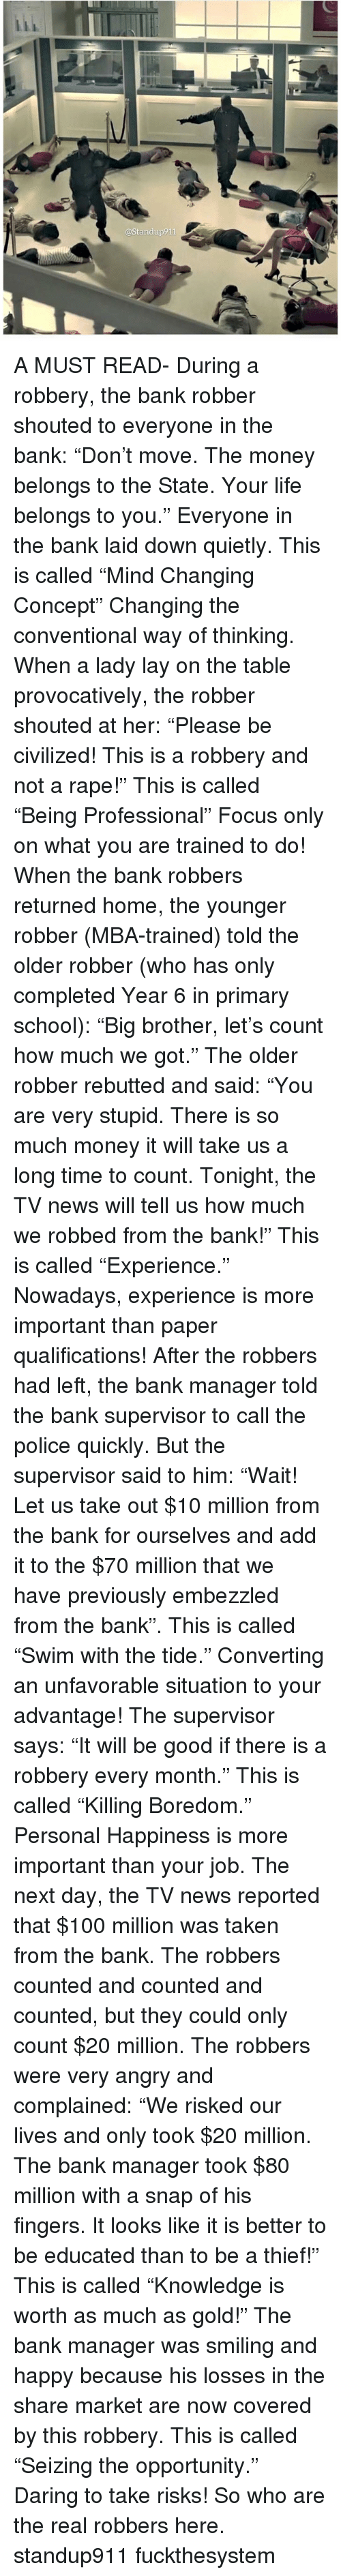 """mba: @Standup911 A MUST READ- During a robbery, the bank robber shouted to everyone in the bank: """"Don't move. The money belongs to the State. Your life belongs to you."""" Everyone in the bank laid down quietly. This is called """"Mind Changing Concept"""" Changing the conventional way of thinking. When a lady lay on the table provocatively, the robber shouted at her: """"Please be civilized! This is a robbery and not a rape!"""" This is called """"Being Professional"""" Focus only on what you are trained to do! When the bank robbers returned home, the younger robber (MBA-trained) told the older robber (who has only completed Year 6 in primary school): """"Big brother, let's count how much we got."""" The older robber rebutted and said: """"You are very stupid. There is so much money it will take us a long time to count. Tonight, the TV news will tell us how much we robbed from the bank!"""" This is called """"Experience."""" Nowadays, experience is more important than paper qualifications! After the robbers had left, the bank manager told the bank supervisor to call the police quickly. But the supervisor said to him: """"Wait! Let us take out $10 million from the bank for ourselves and add it to the $70 million that we have previously embezzled from the bank"""". This is called """"Swim with the tide."""" Converting an unfavorable situation to your advantage! The supervisor says: """"It will be good if there is a robbery every month."""" This is called """"Killing Boredom."""" Personal Happiness is more important than your job. The next day, the TV news reported that $100 million was taken from the bank. The robbers counted and counted and counted, but they could only count $20 million. The robbers were very angry and complained: """"We risked our lives and only took $20 million. The bank manager took $80 million with a snap of his fingers. It looks like it is better to be educated than to be a thief!"""" This is called """"Knowledge is worth as much as gold!"""" The bank manager was smiling and happy because his losses in the share marke"""